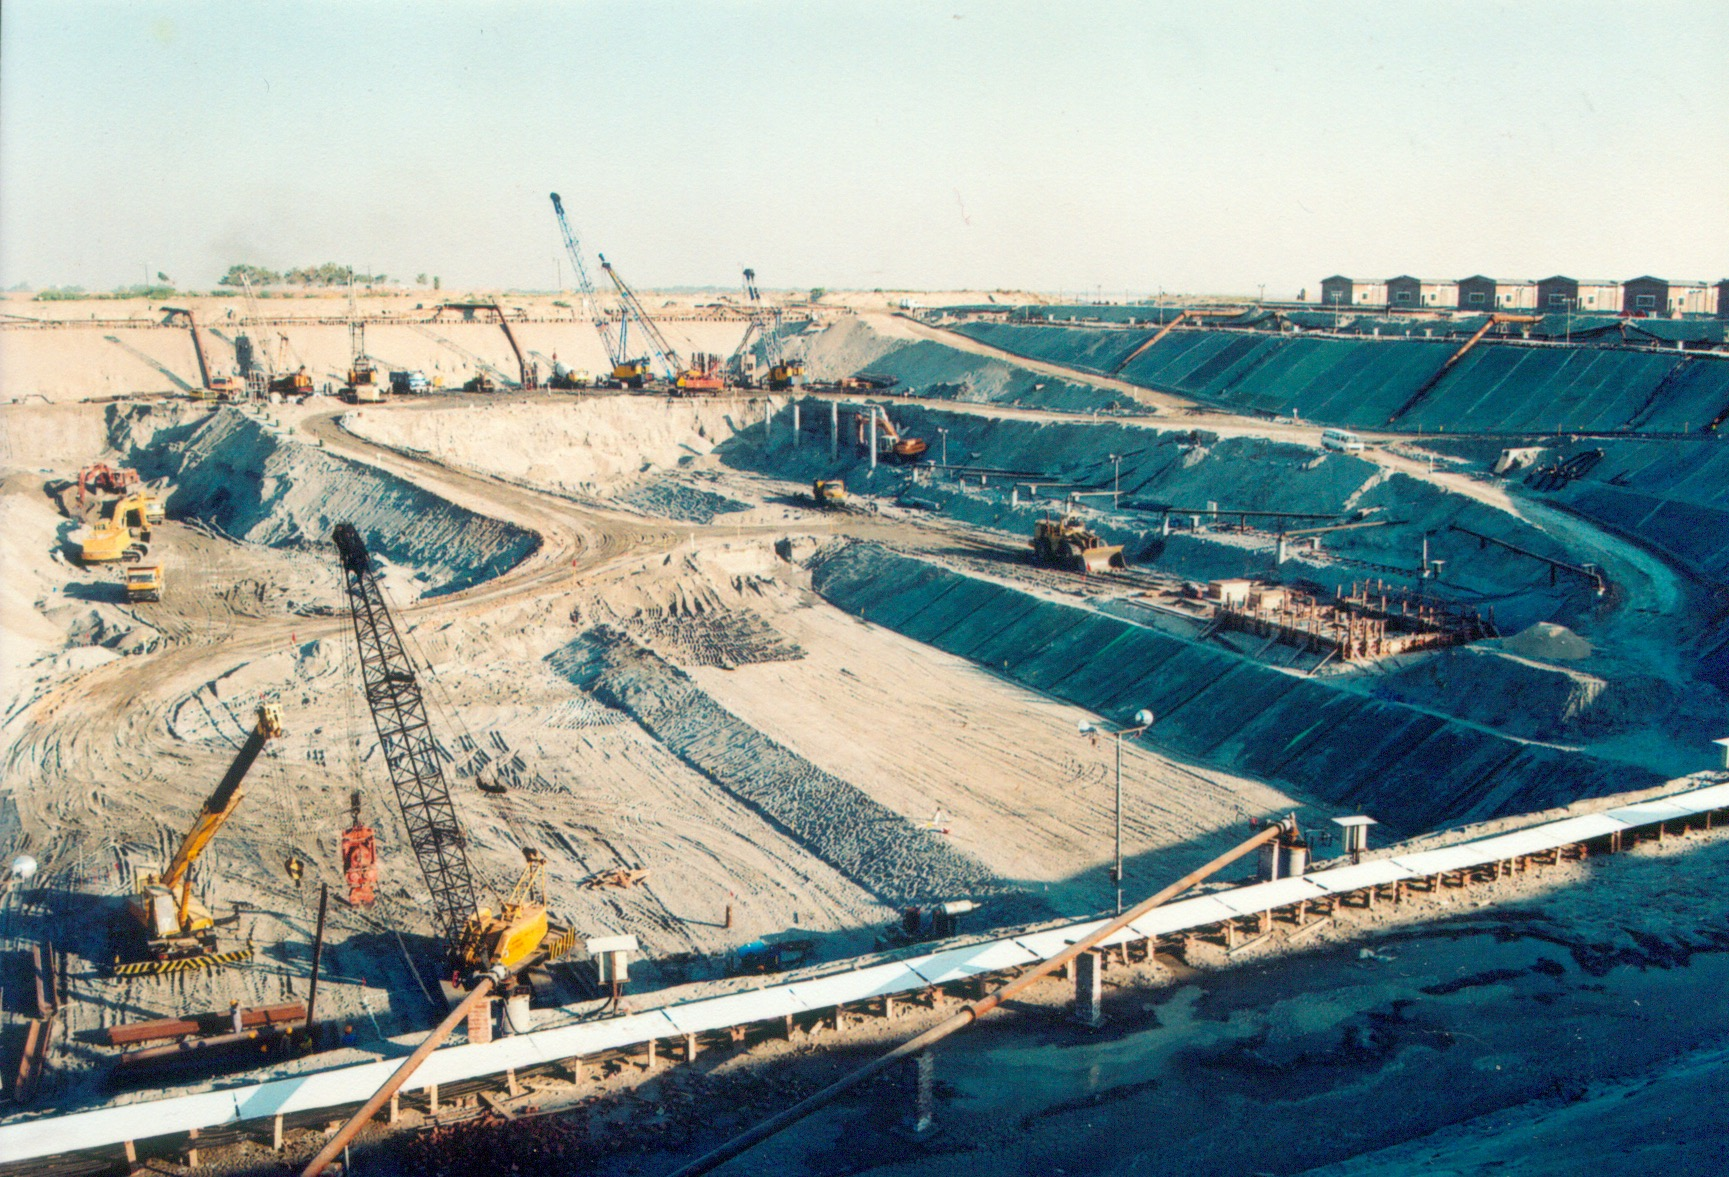 Dewatering at Chashma Barrage The biggest dewatering project in the world